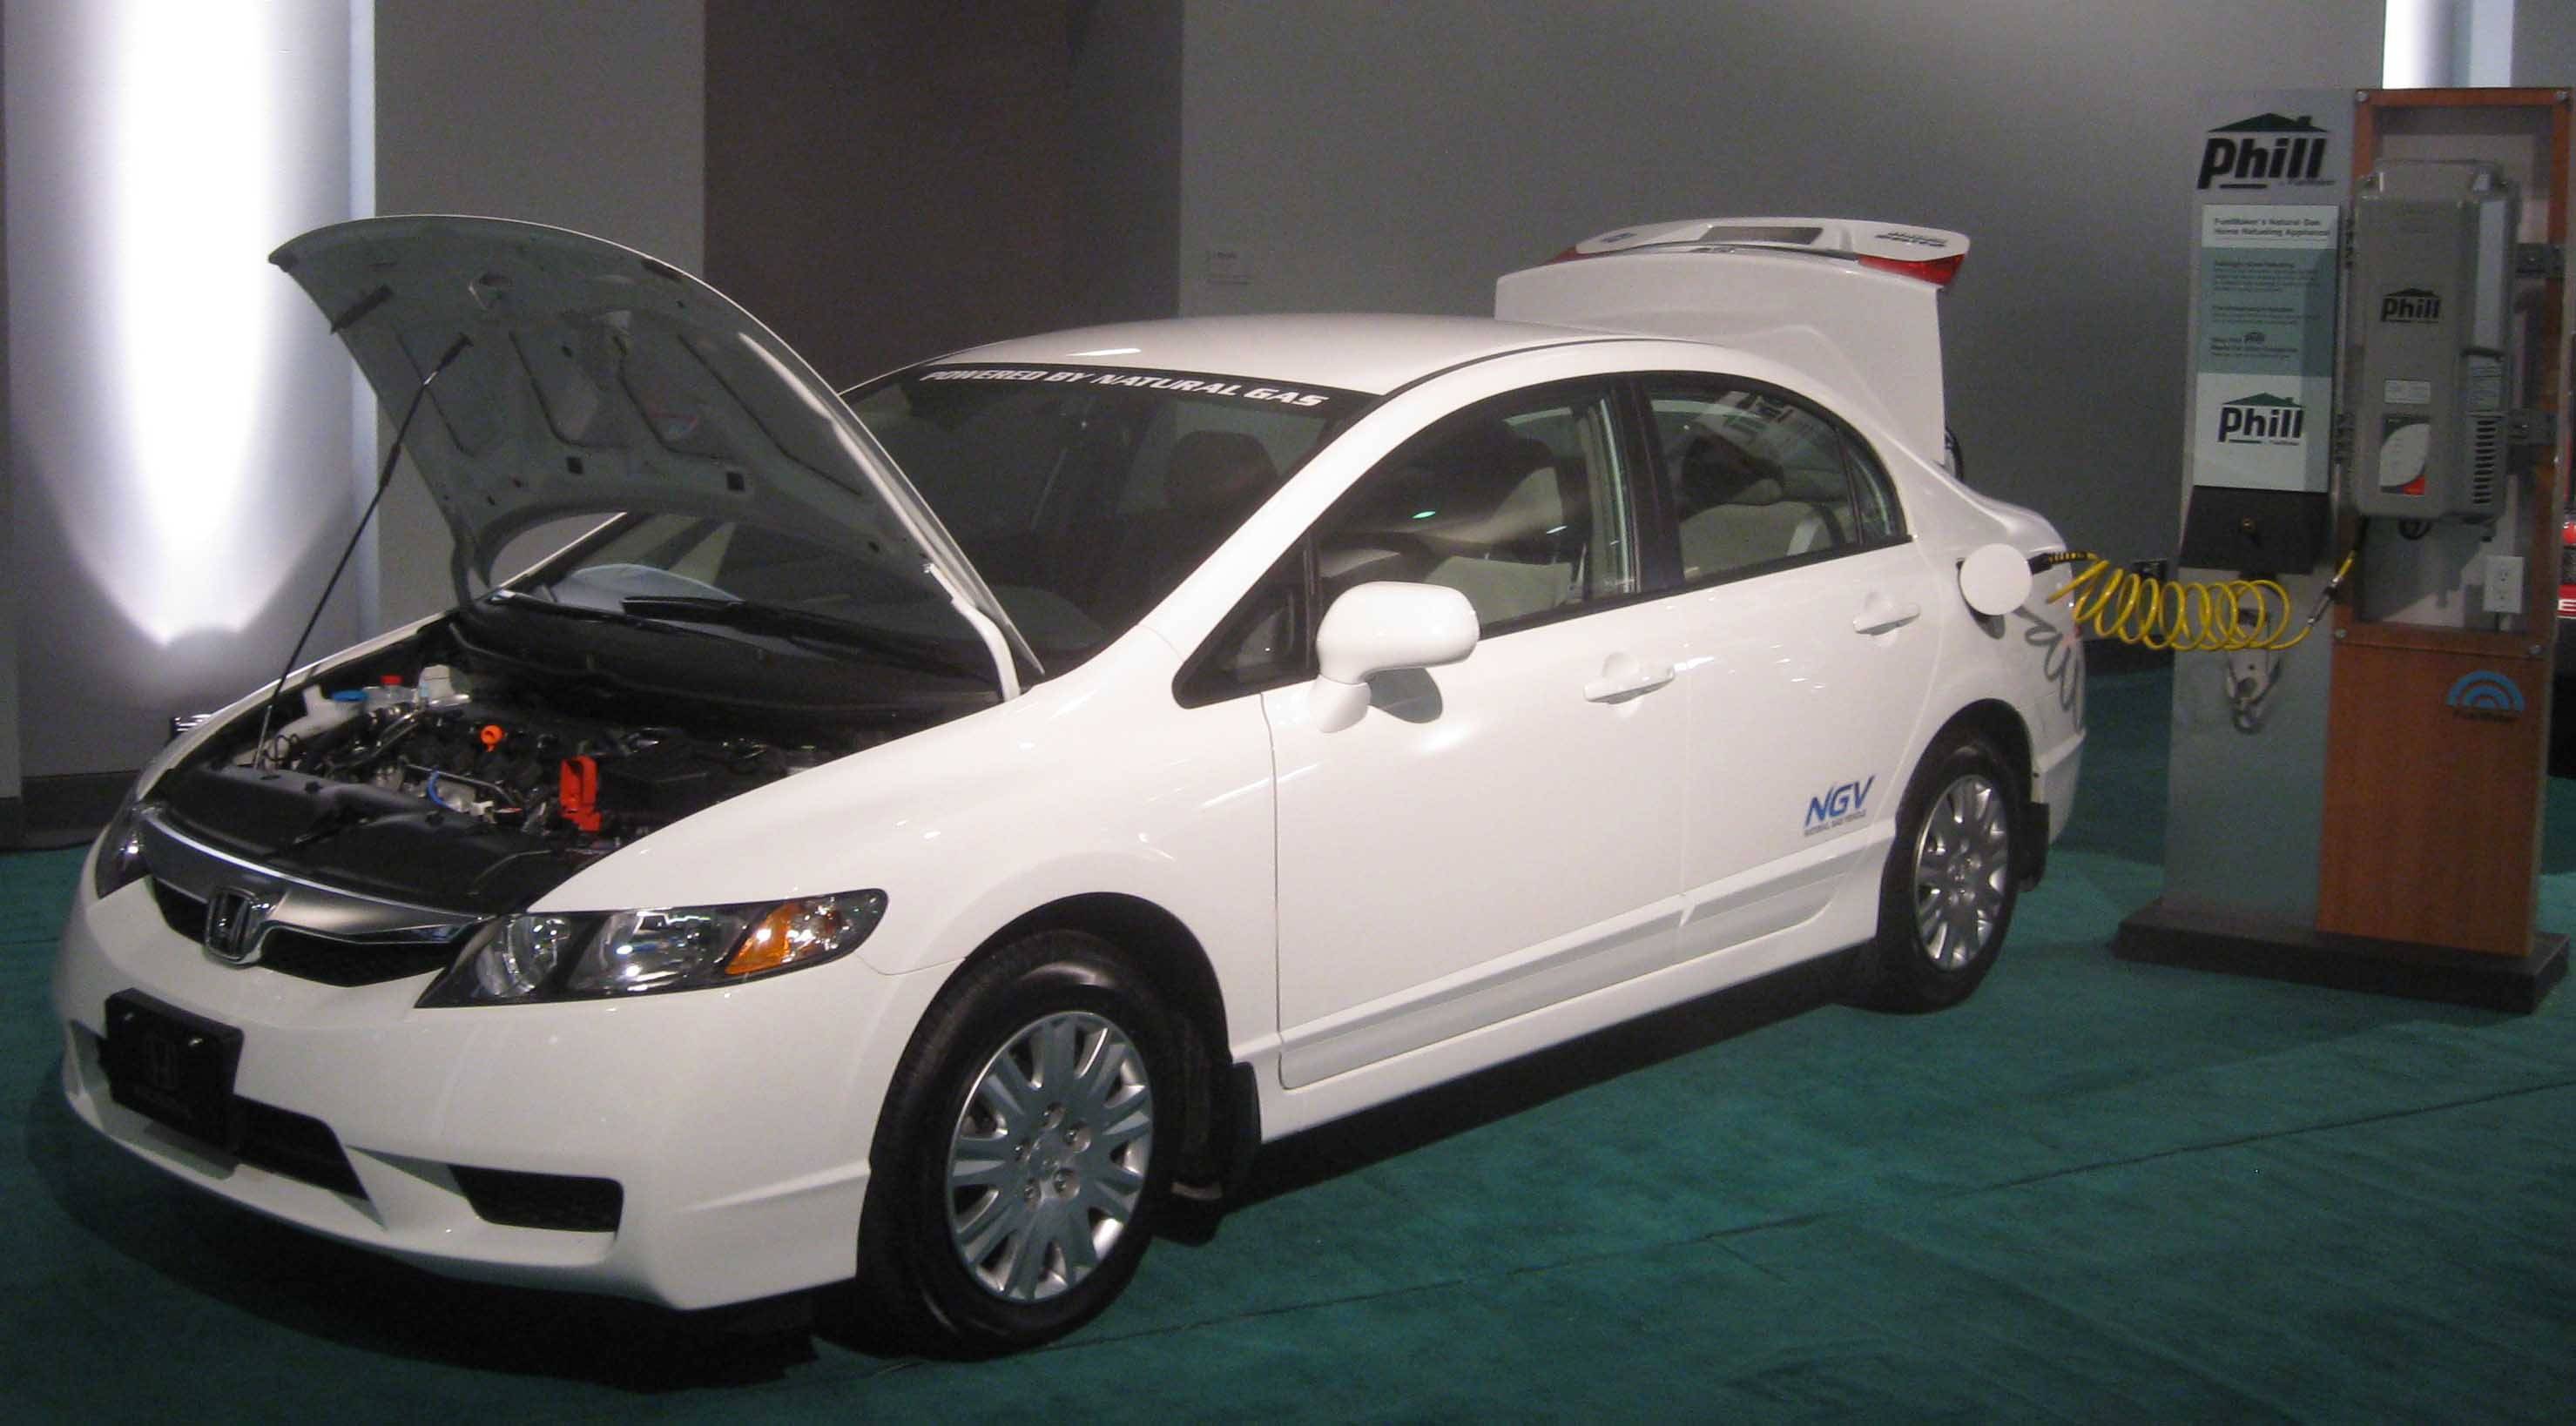 Honda Civic GX - Wikipedia